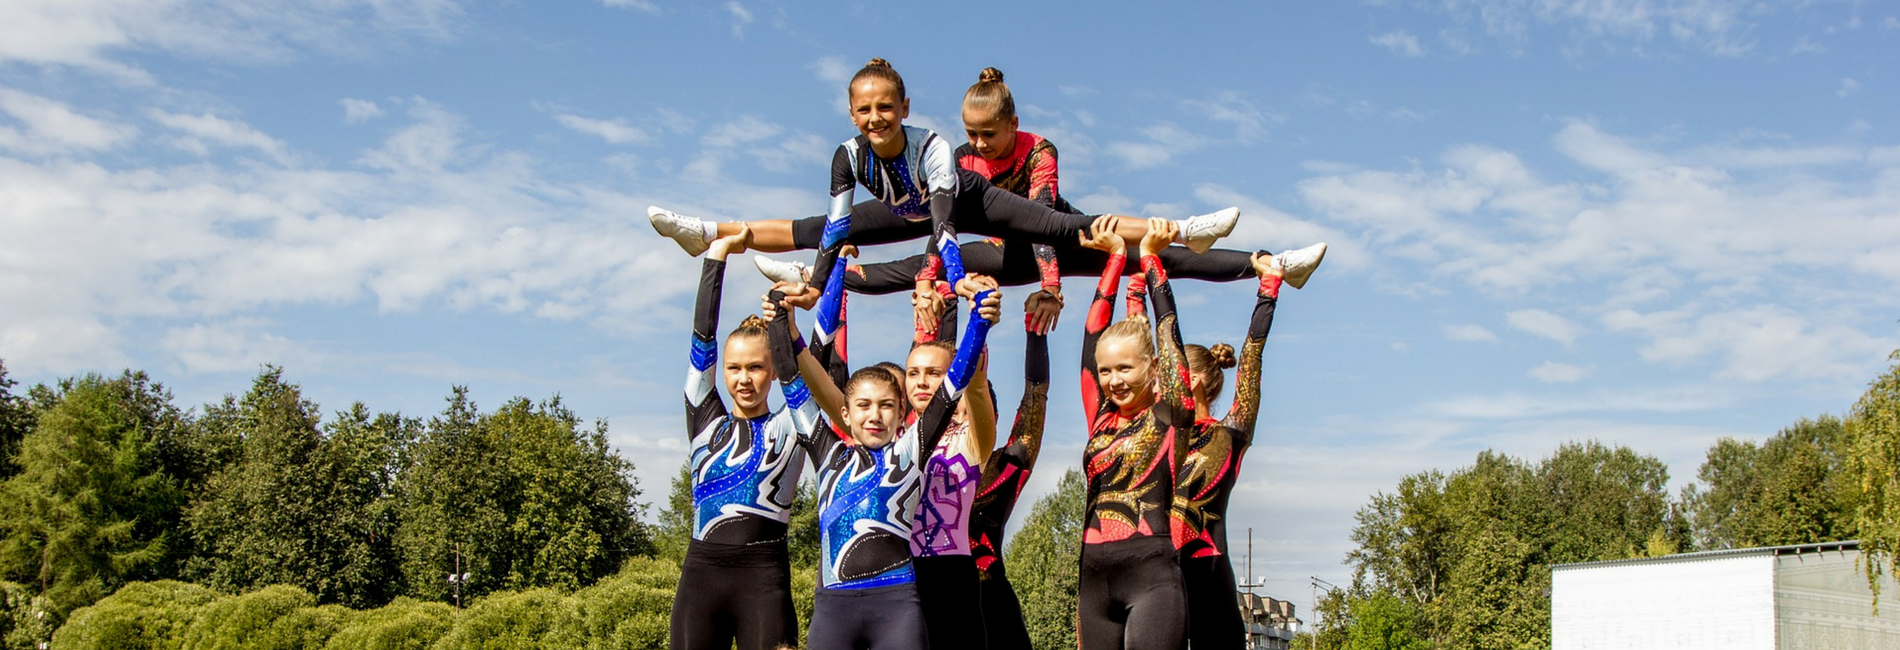 Standard swscd   cheerleading  1   activity banner image    1900x650